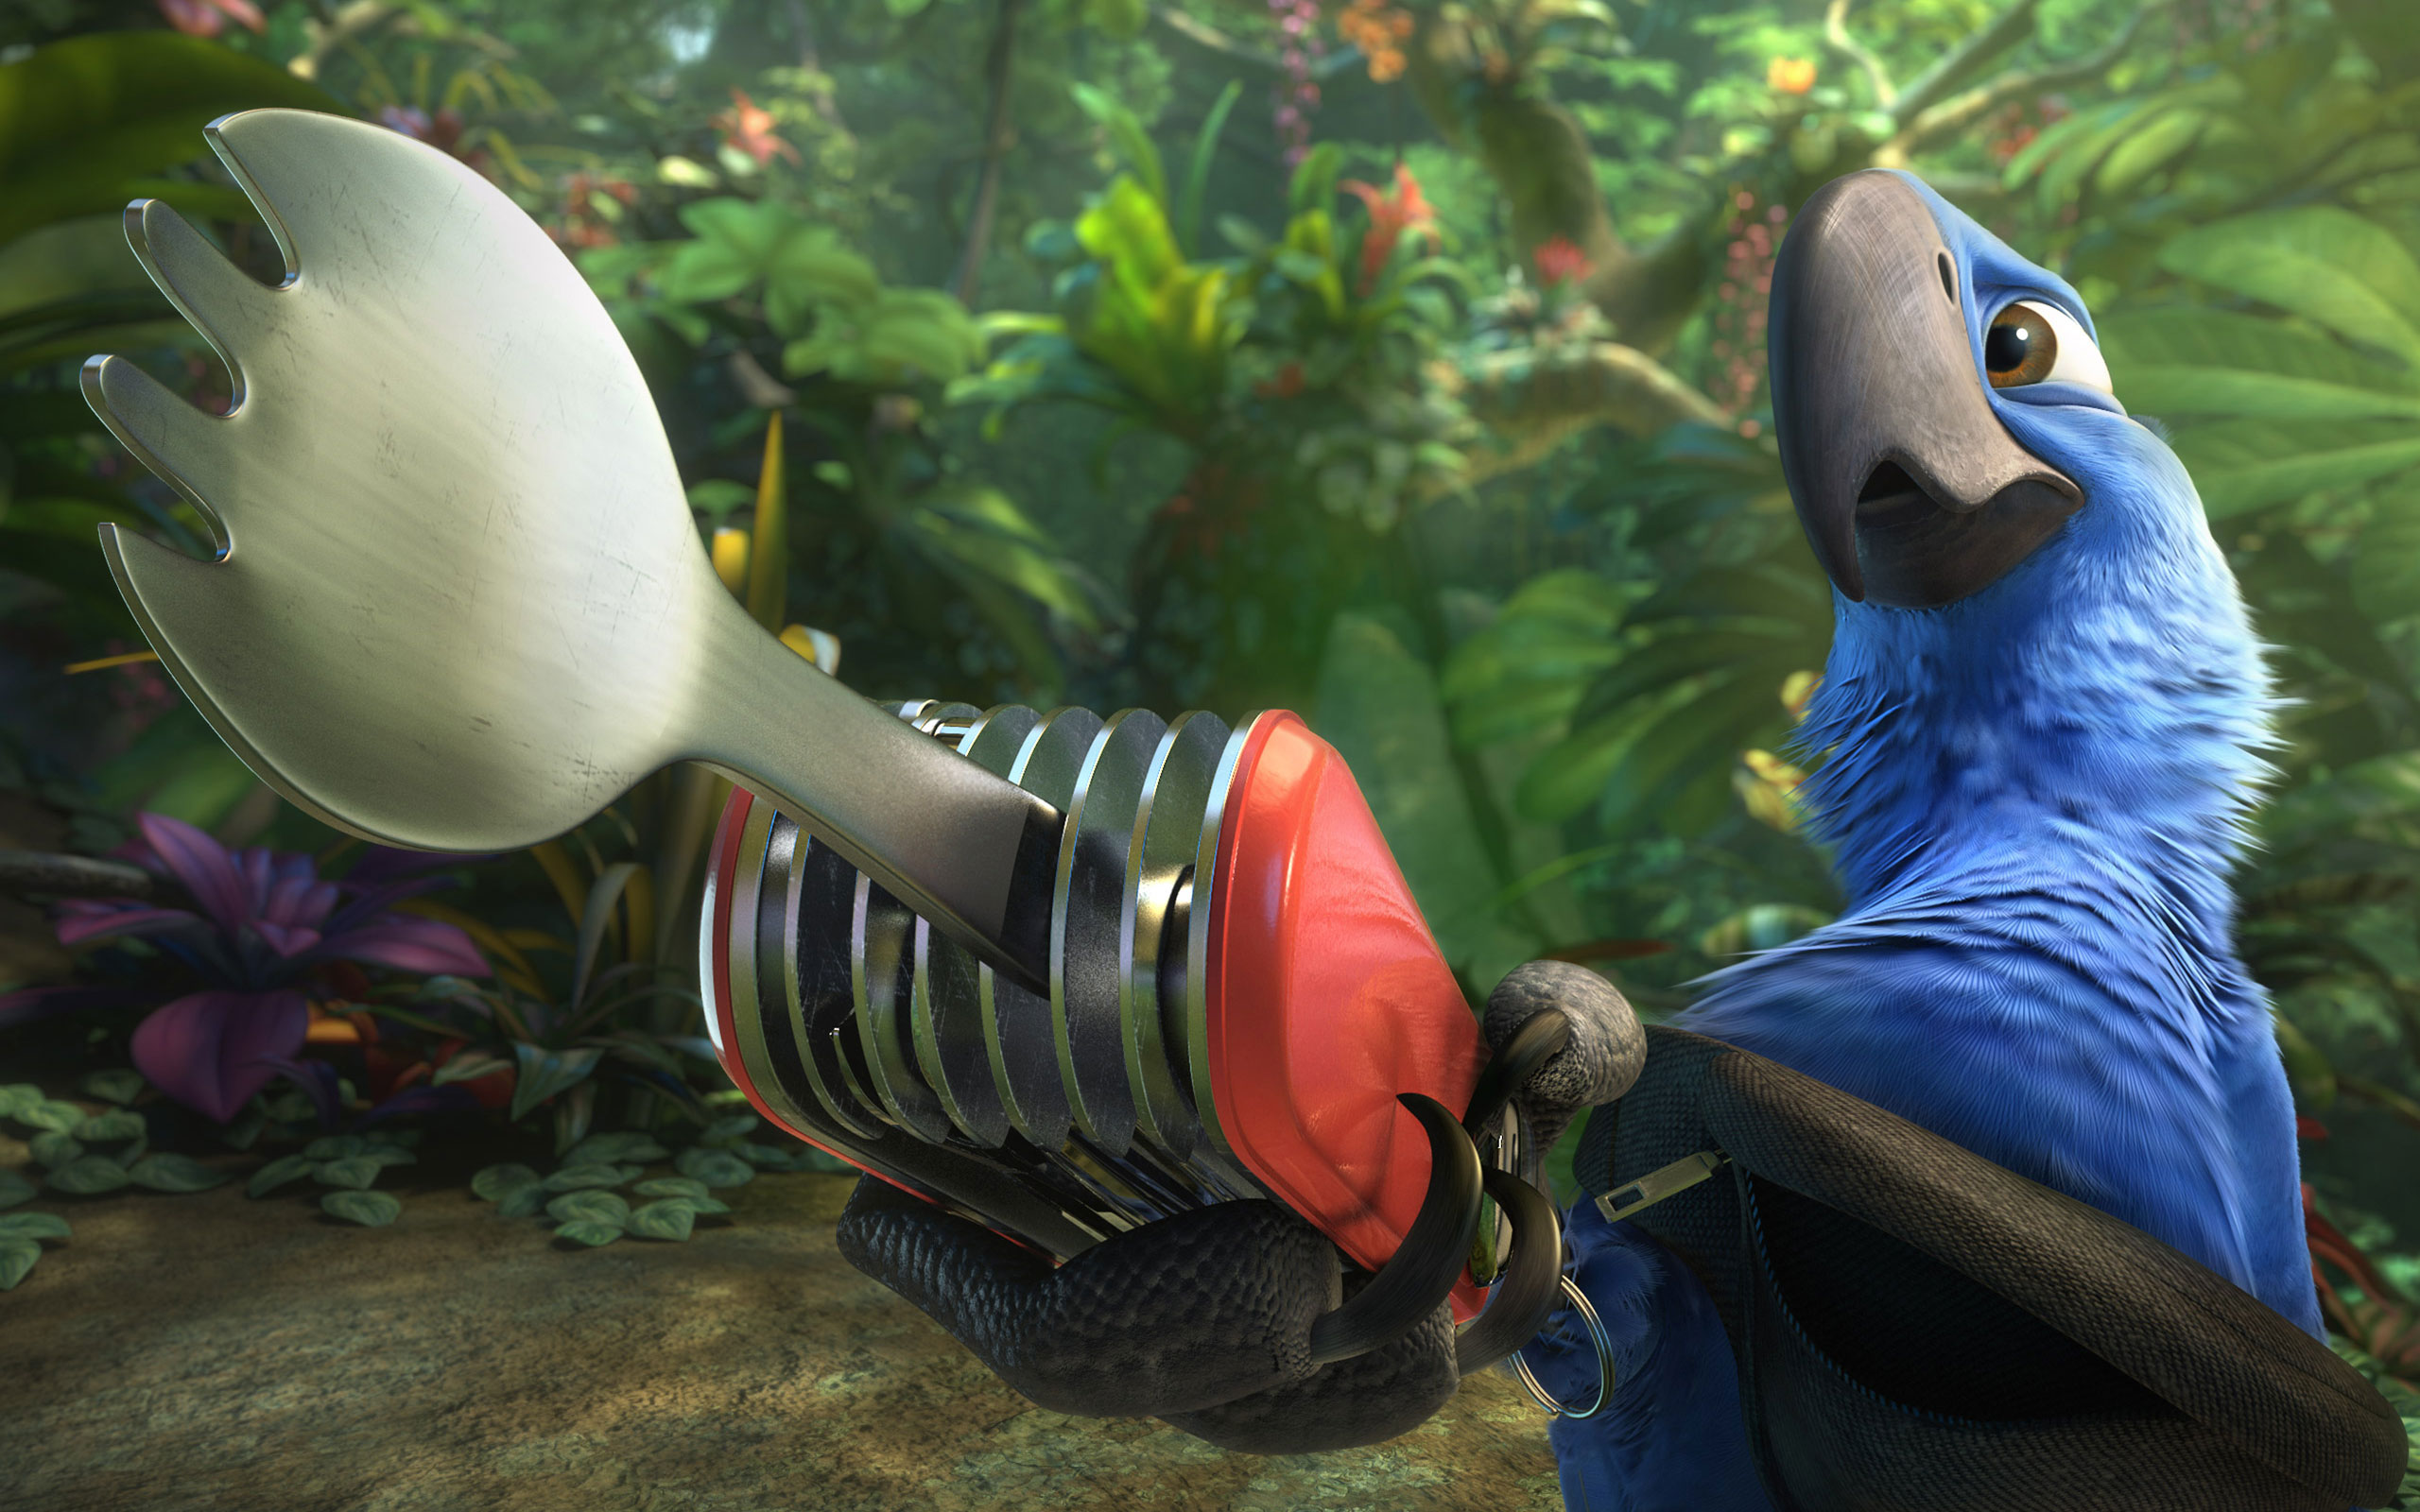 Rio with army knife free movie wallpapers desktop backgrounds rio rio with army knife free movie wallpapers desktop backgrounds rio 2 2014 movie hd movie wallpapers1 voltagebd Choice Image